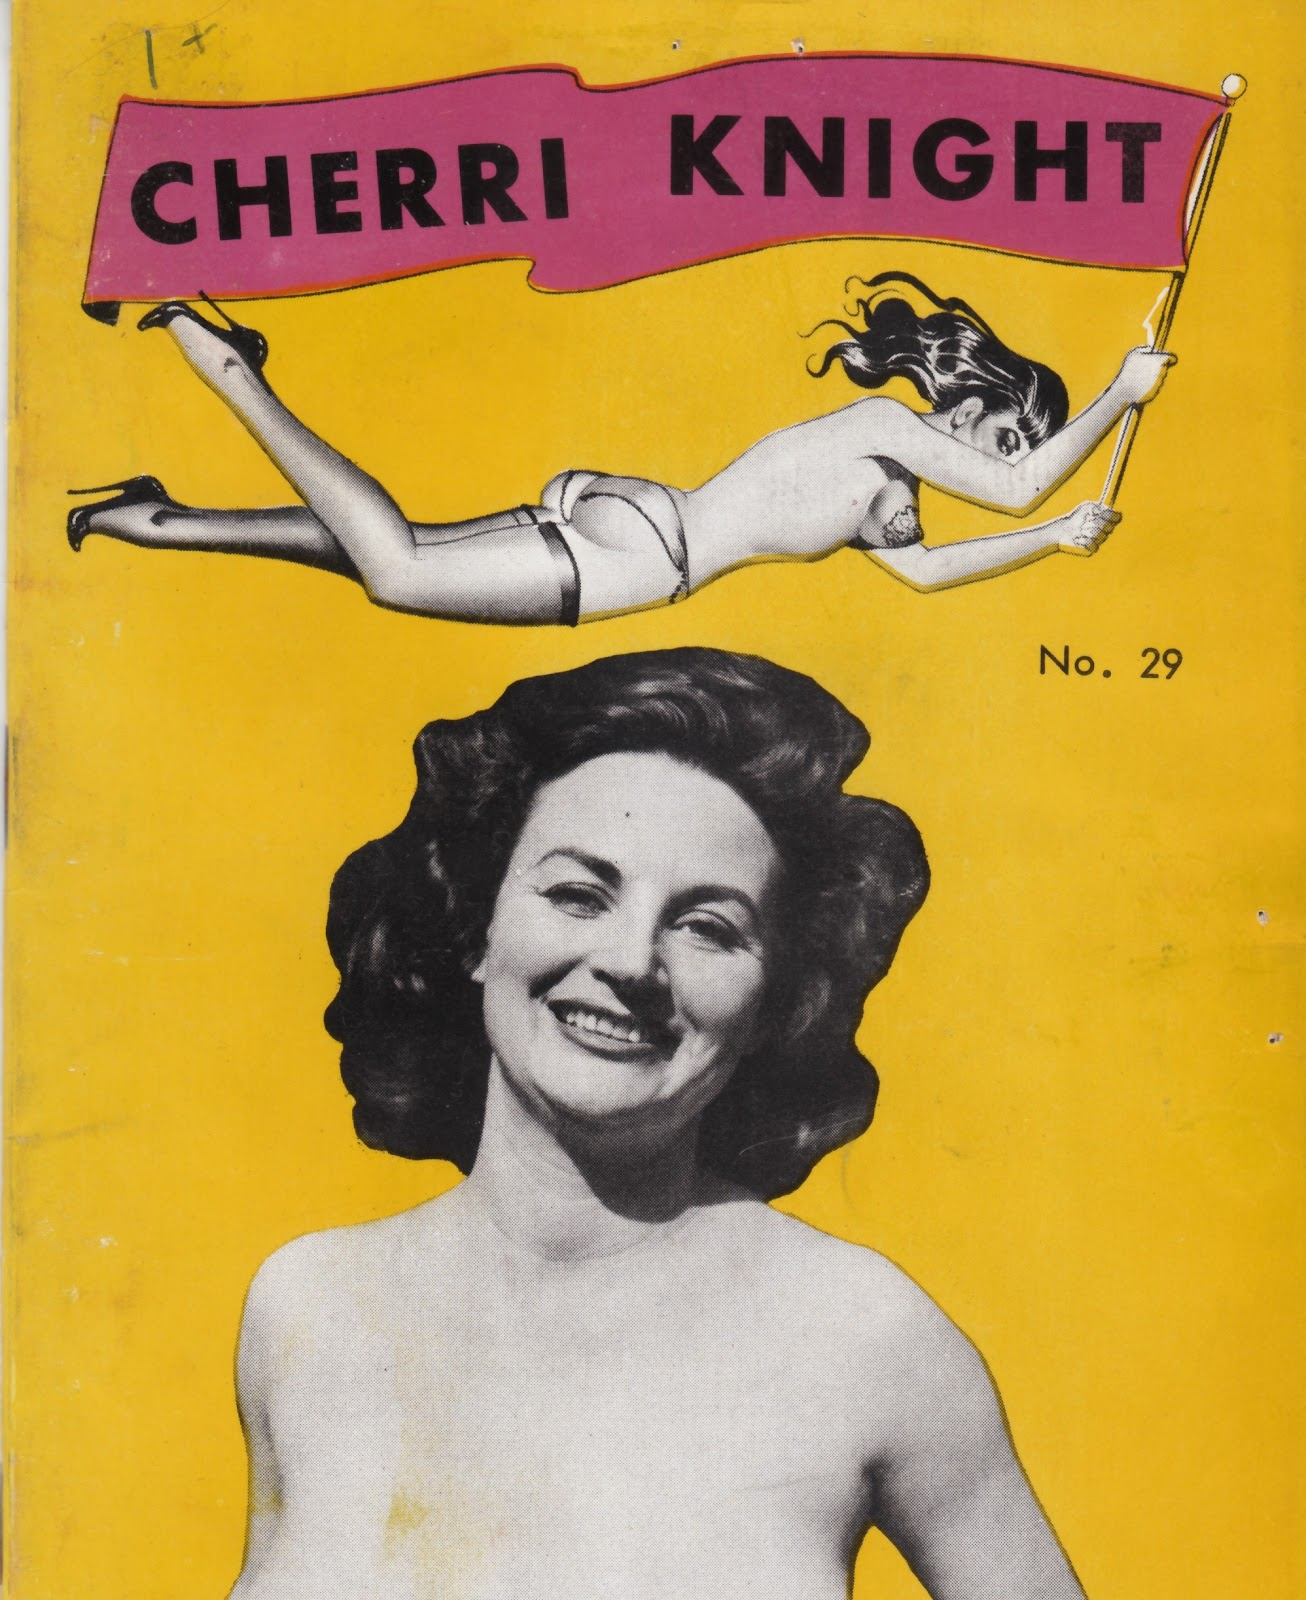 She appears on the cover of her own Proto-Porn booklet in 1959 published by ...